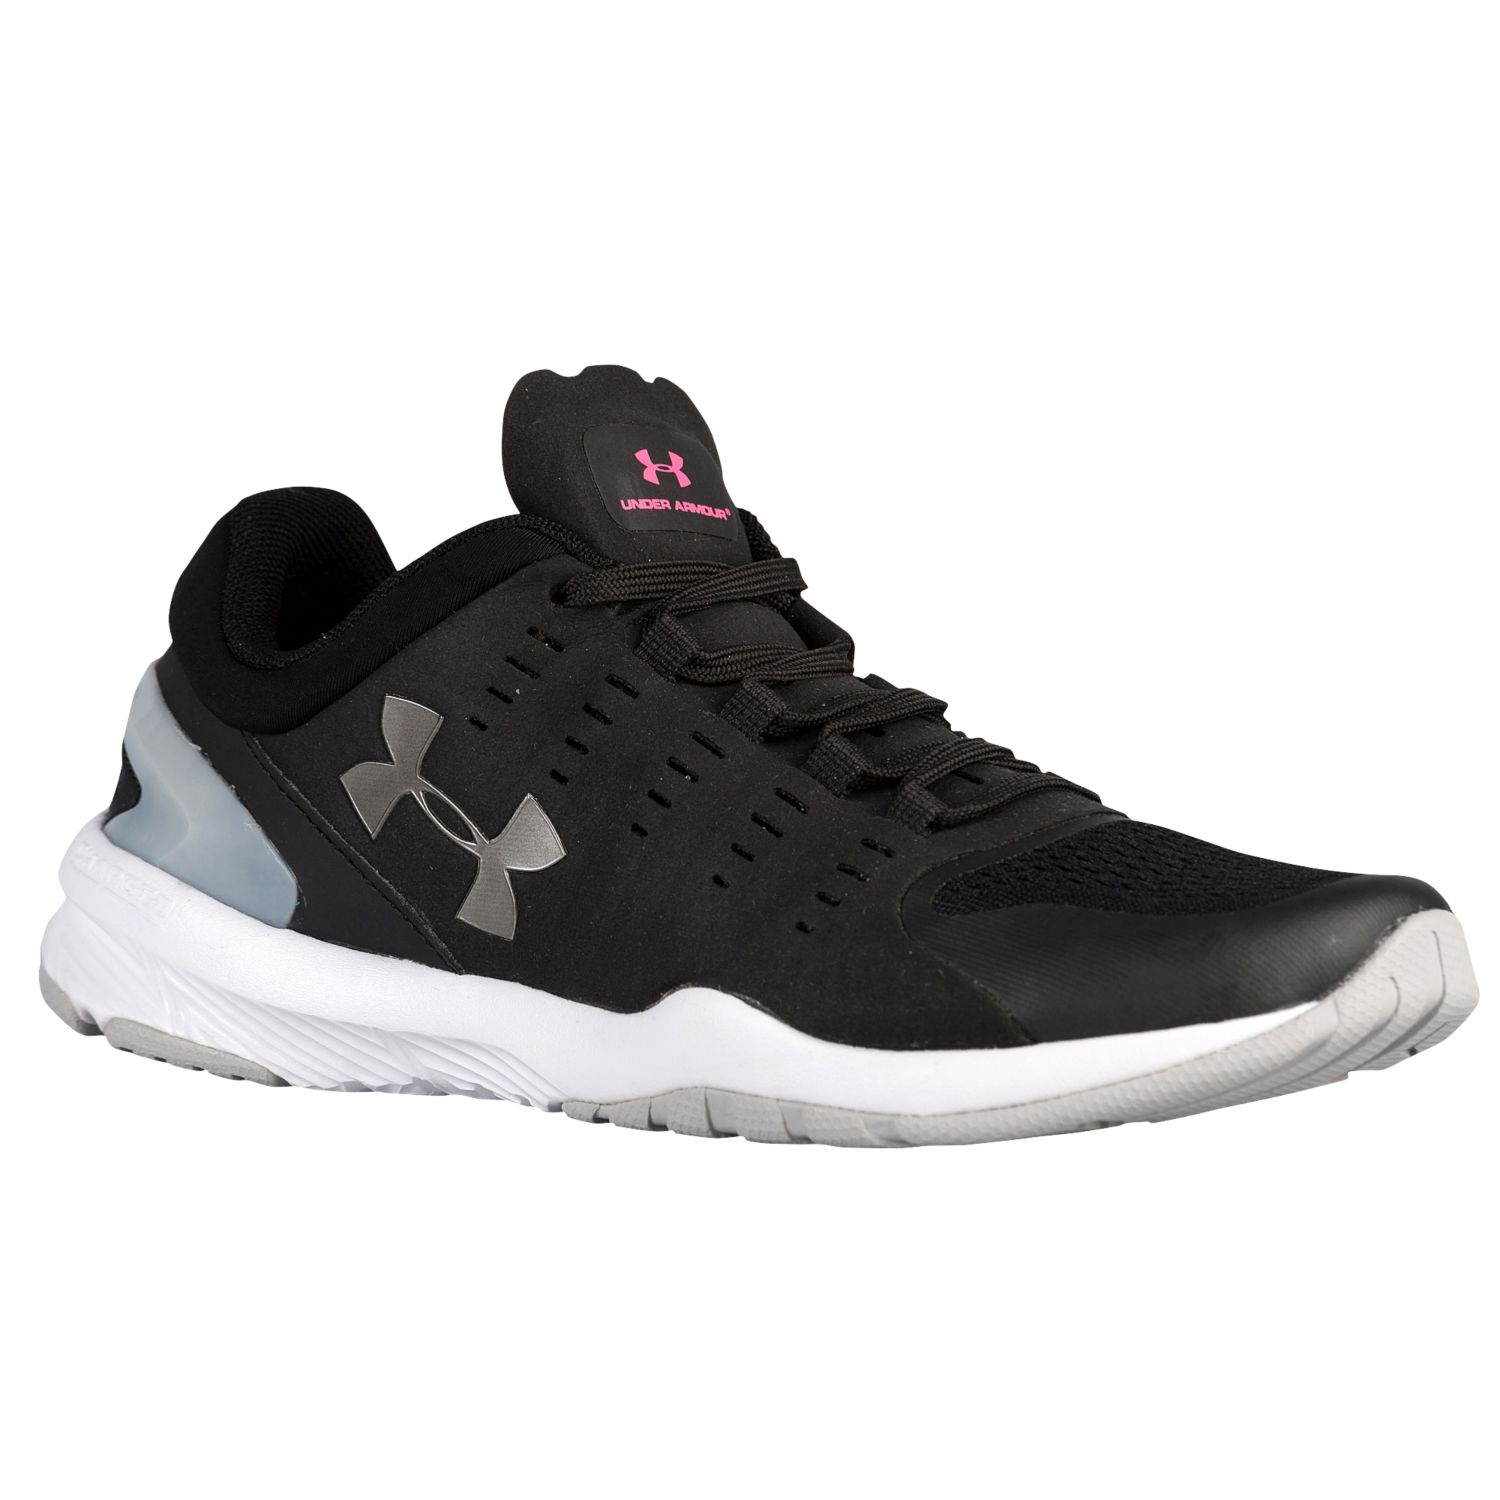 Under Armour Women S Charged Stunner Training Shoes